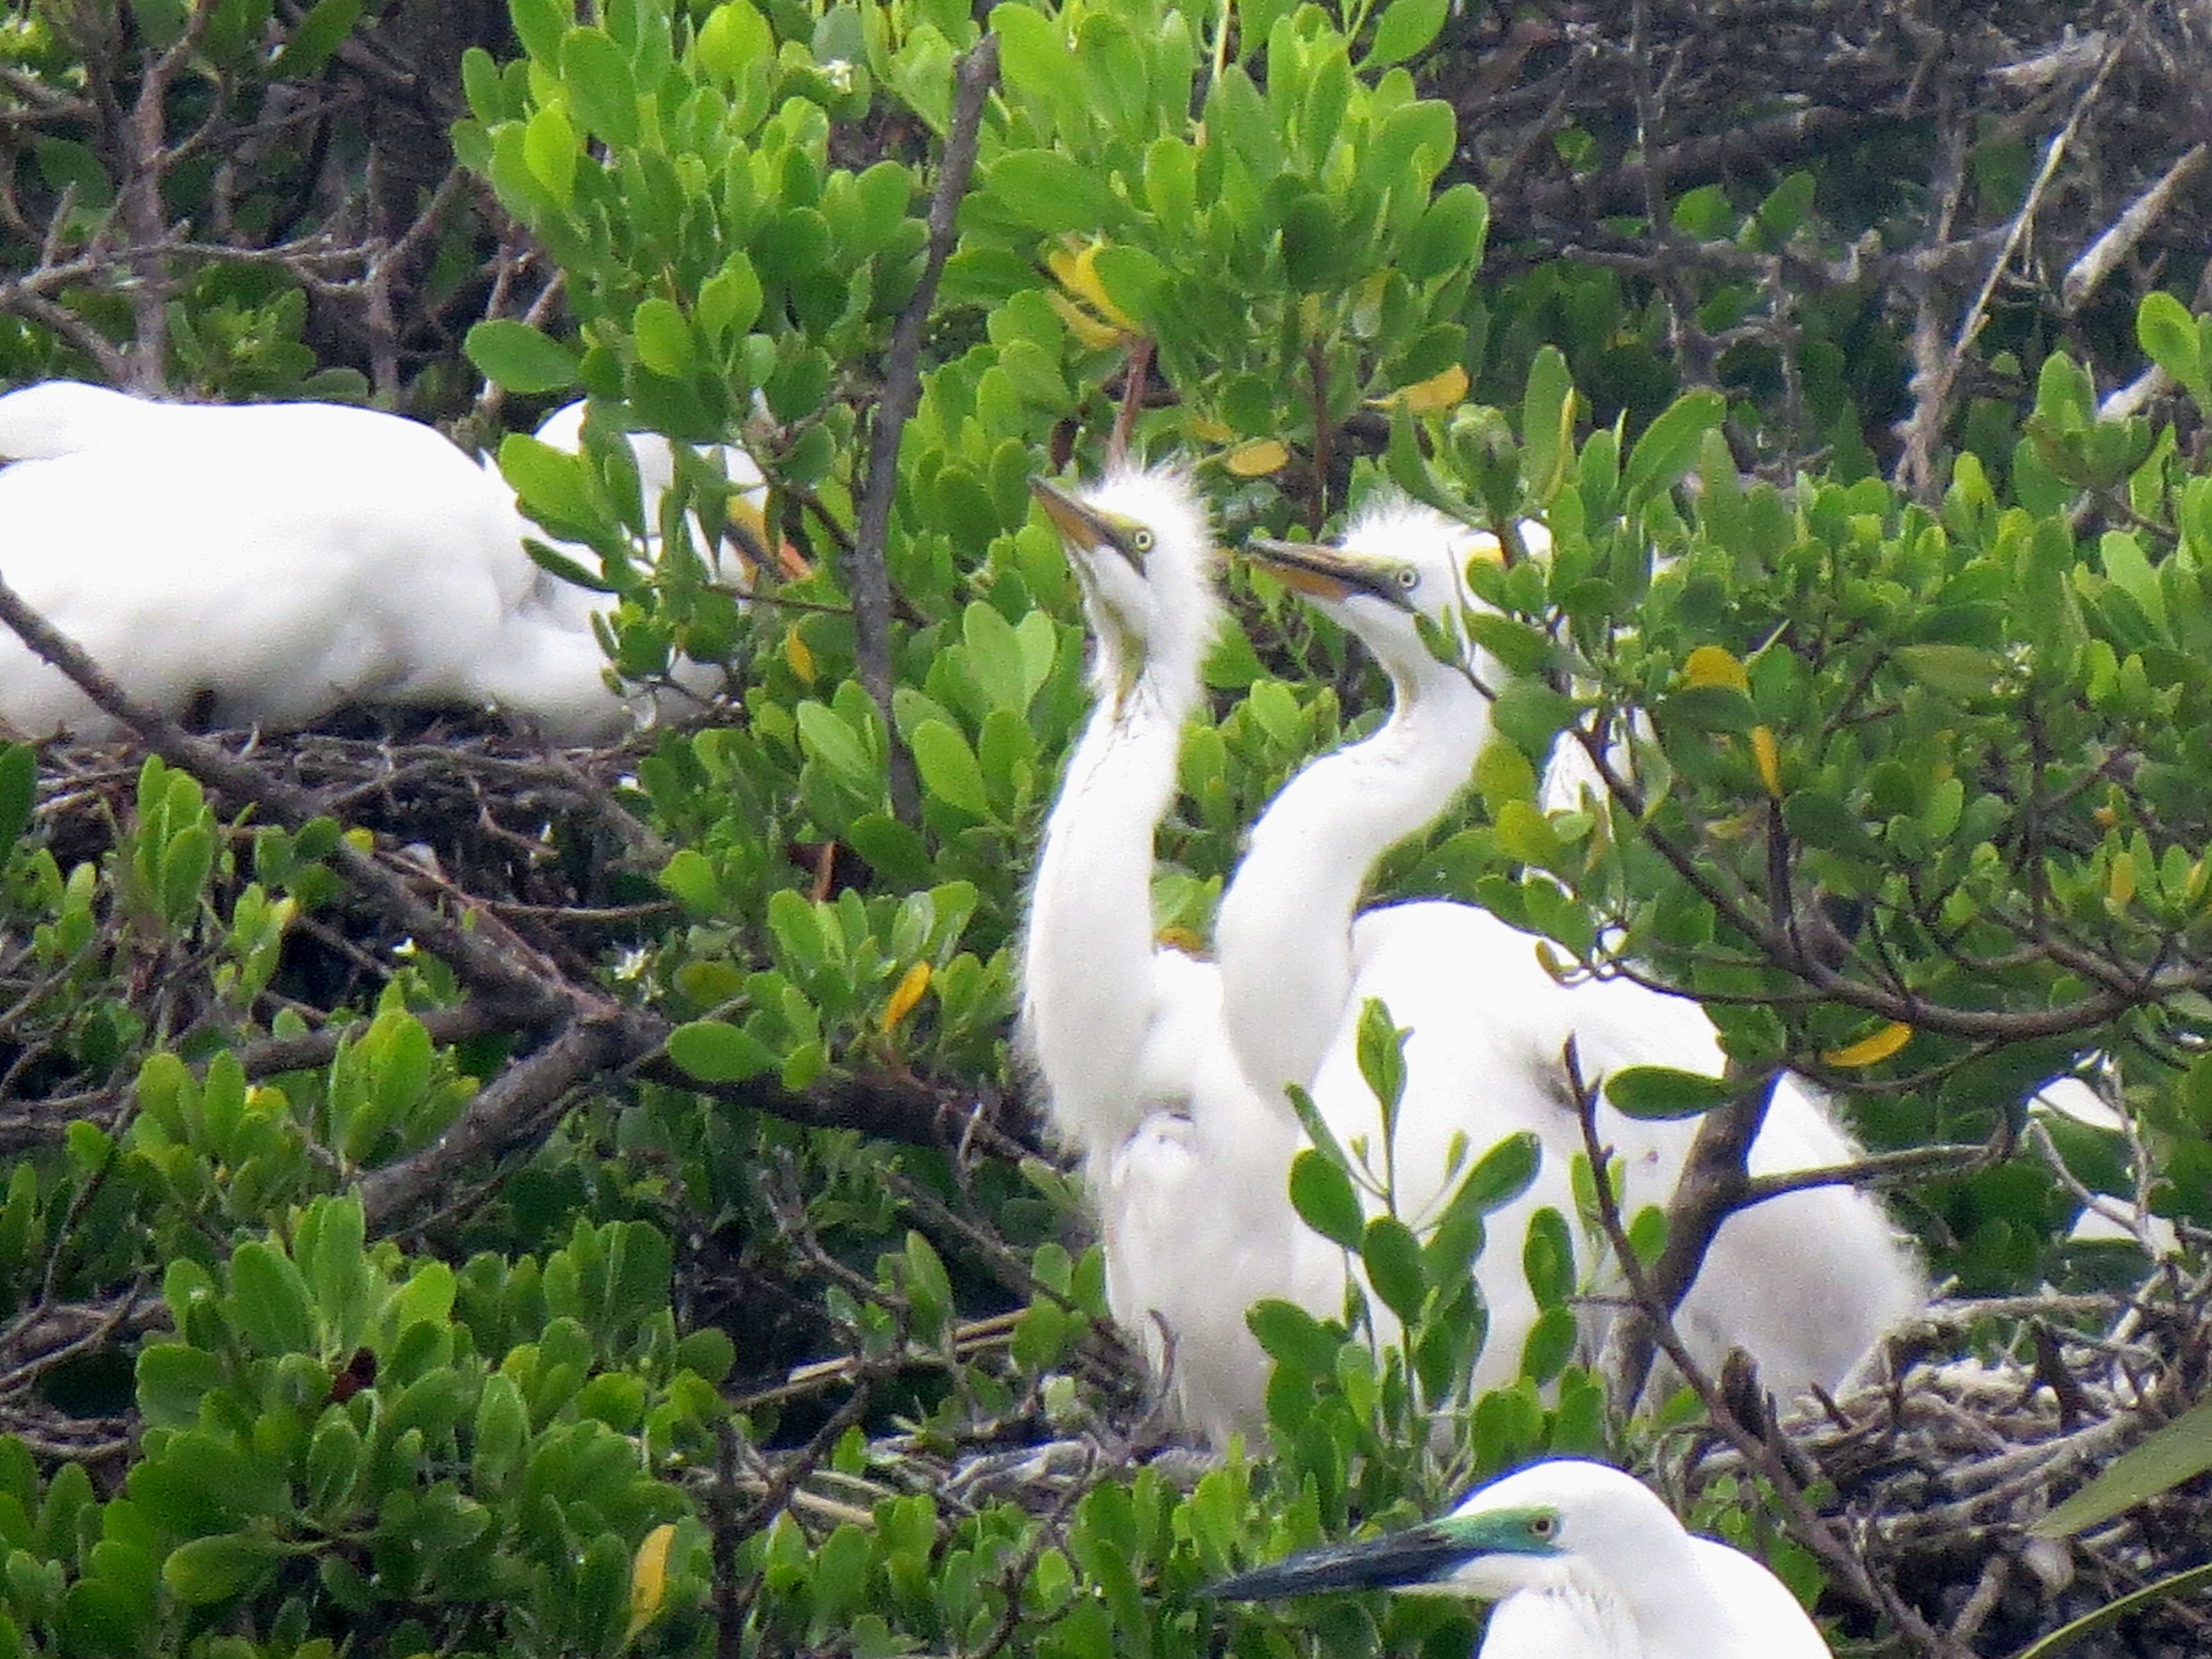 Great Egret chicks in Zamboanga. Photo by Maia Tanedo